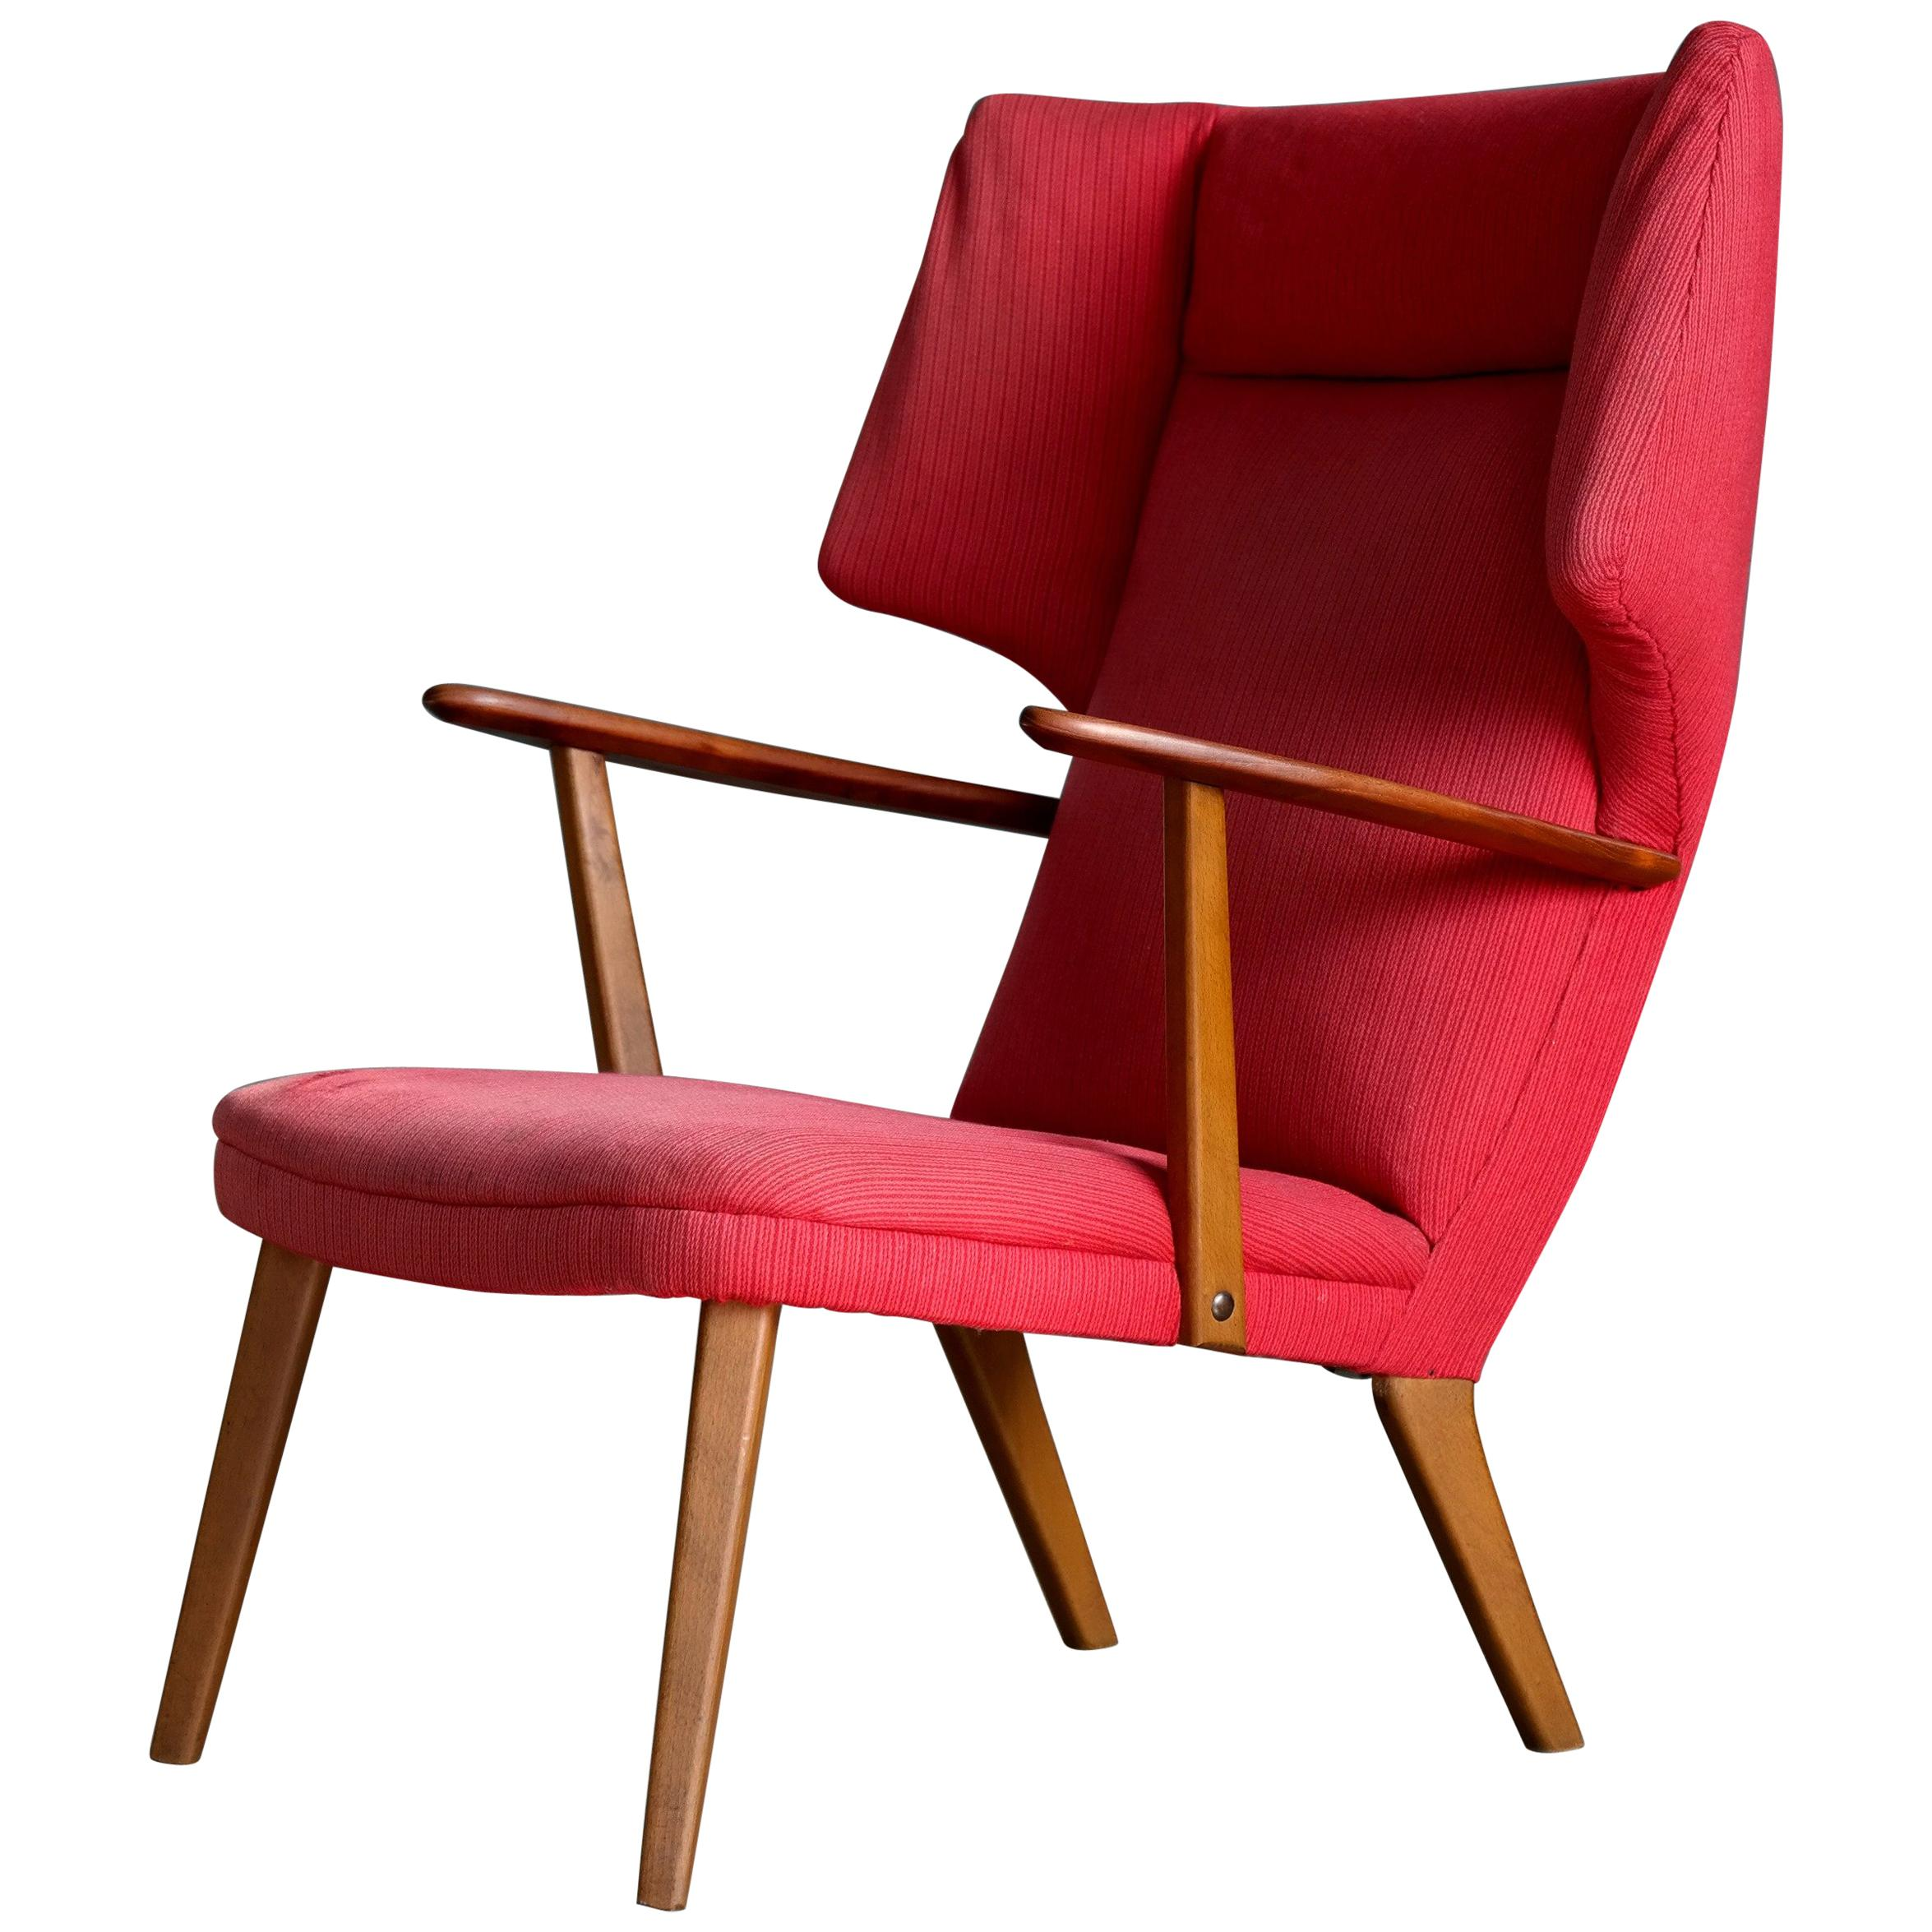 Danish 1950's Madsen and Schubell High Back Lounge Chair in Teak and Oak